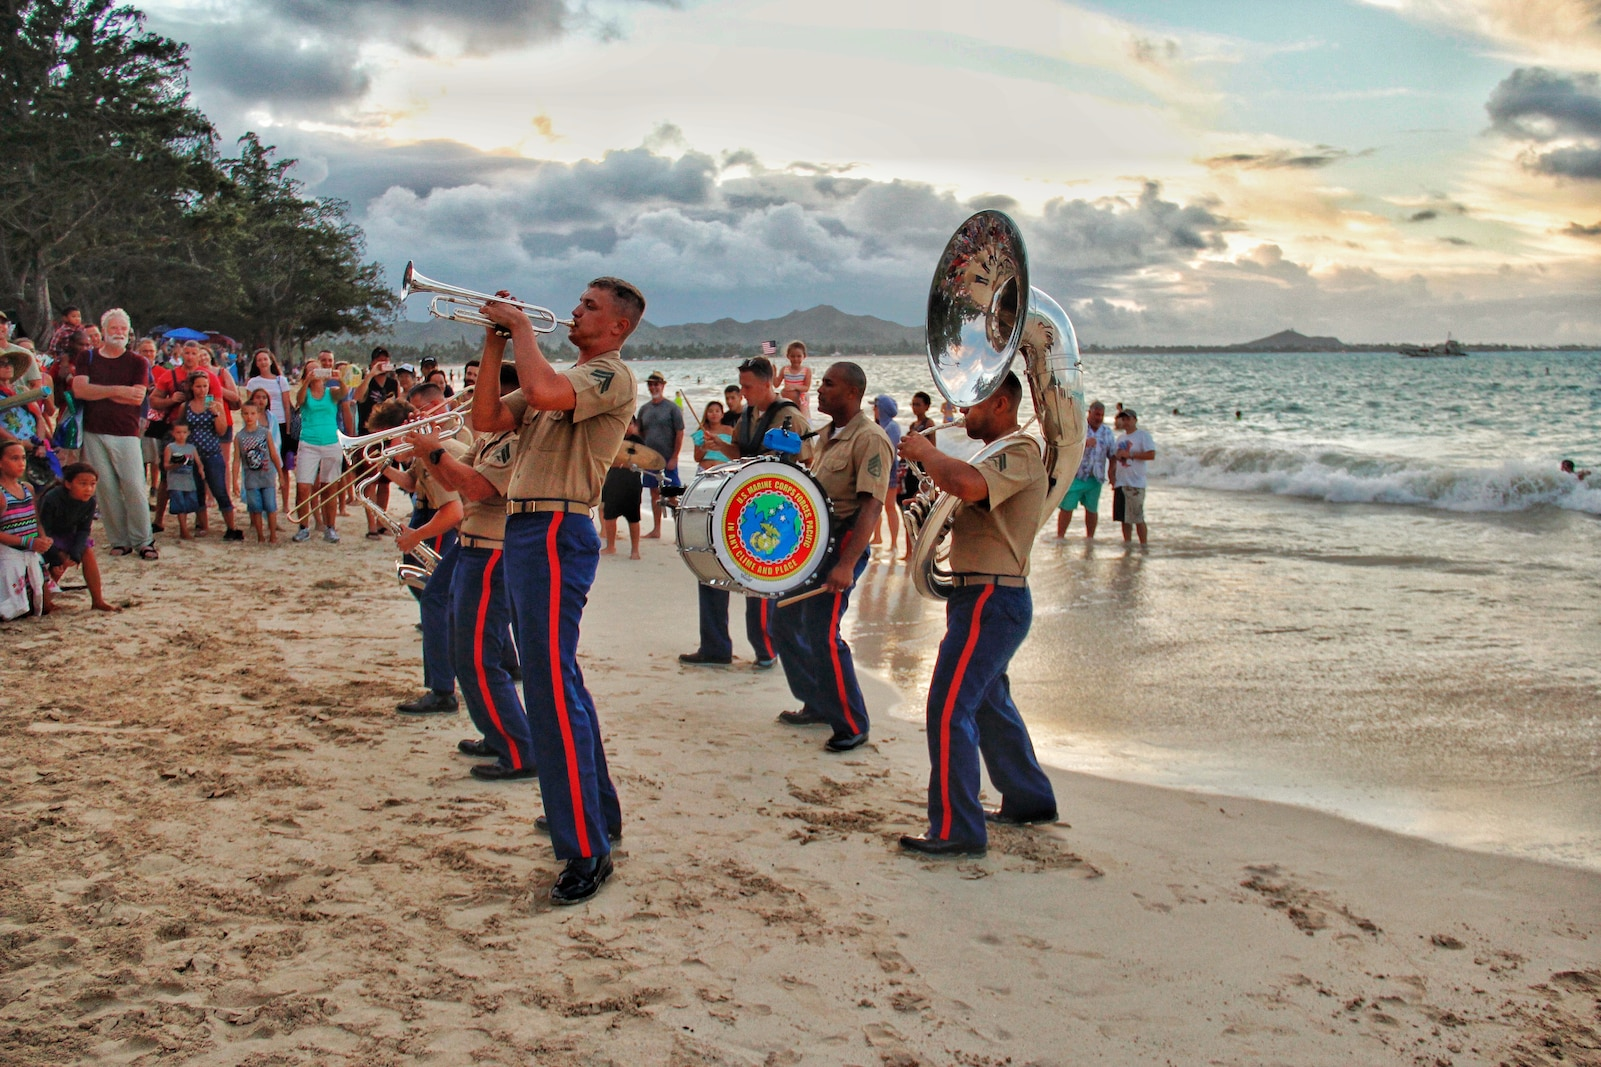 The MARFORPAC Brass Band performs in front of a crowd at Kailua Beach.